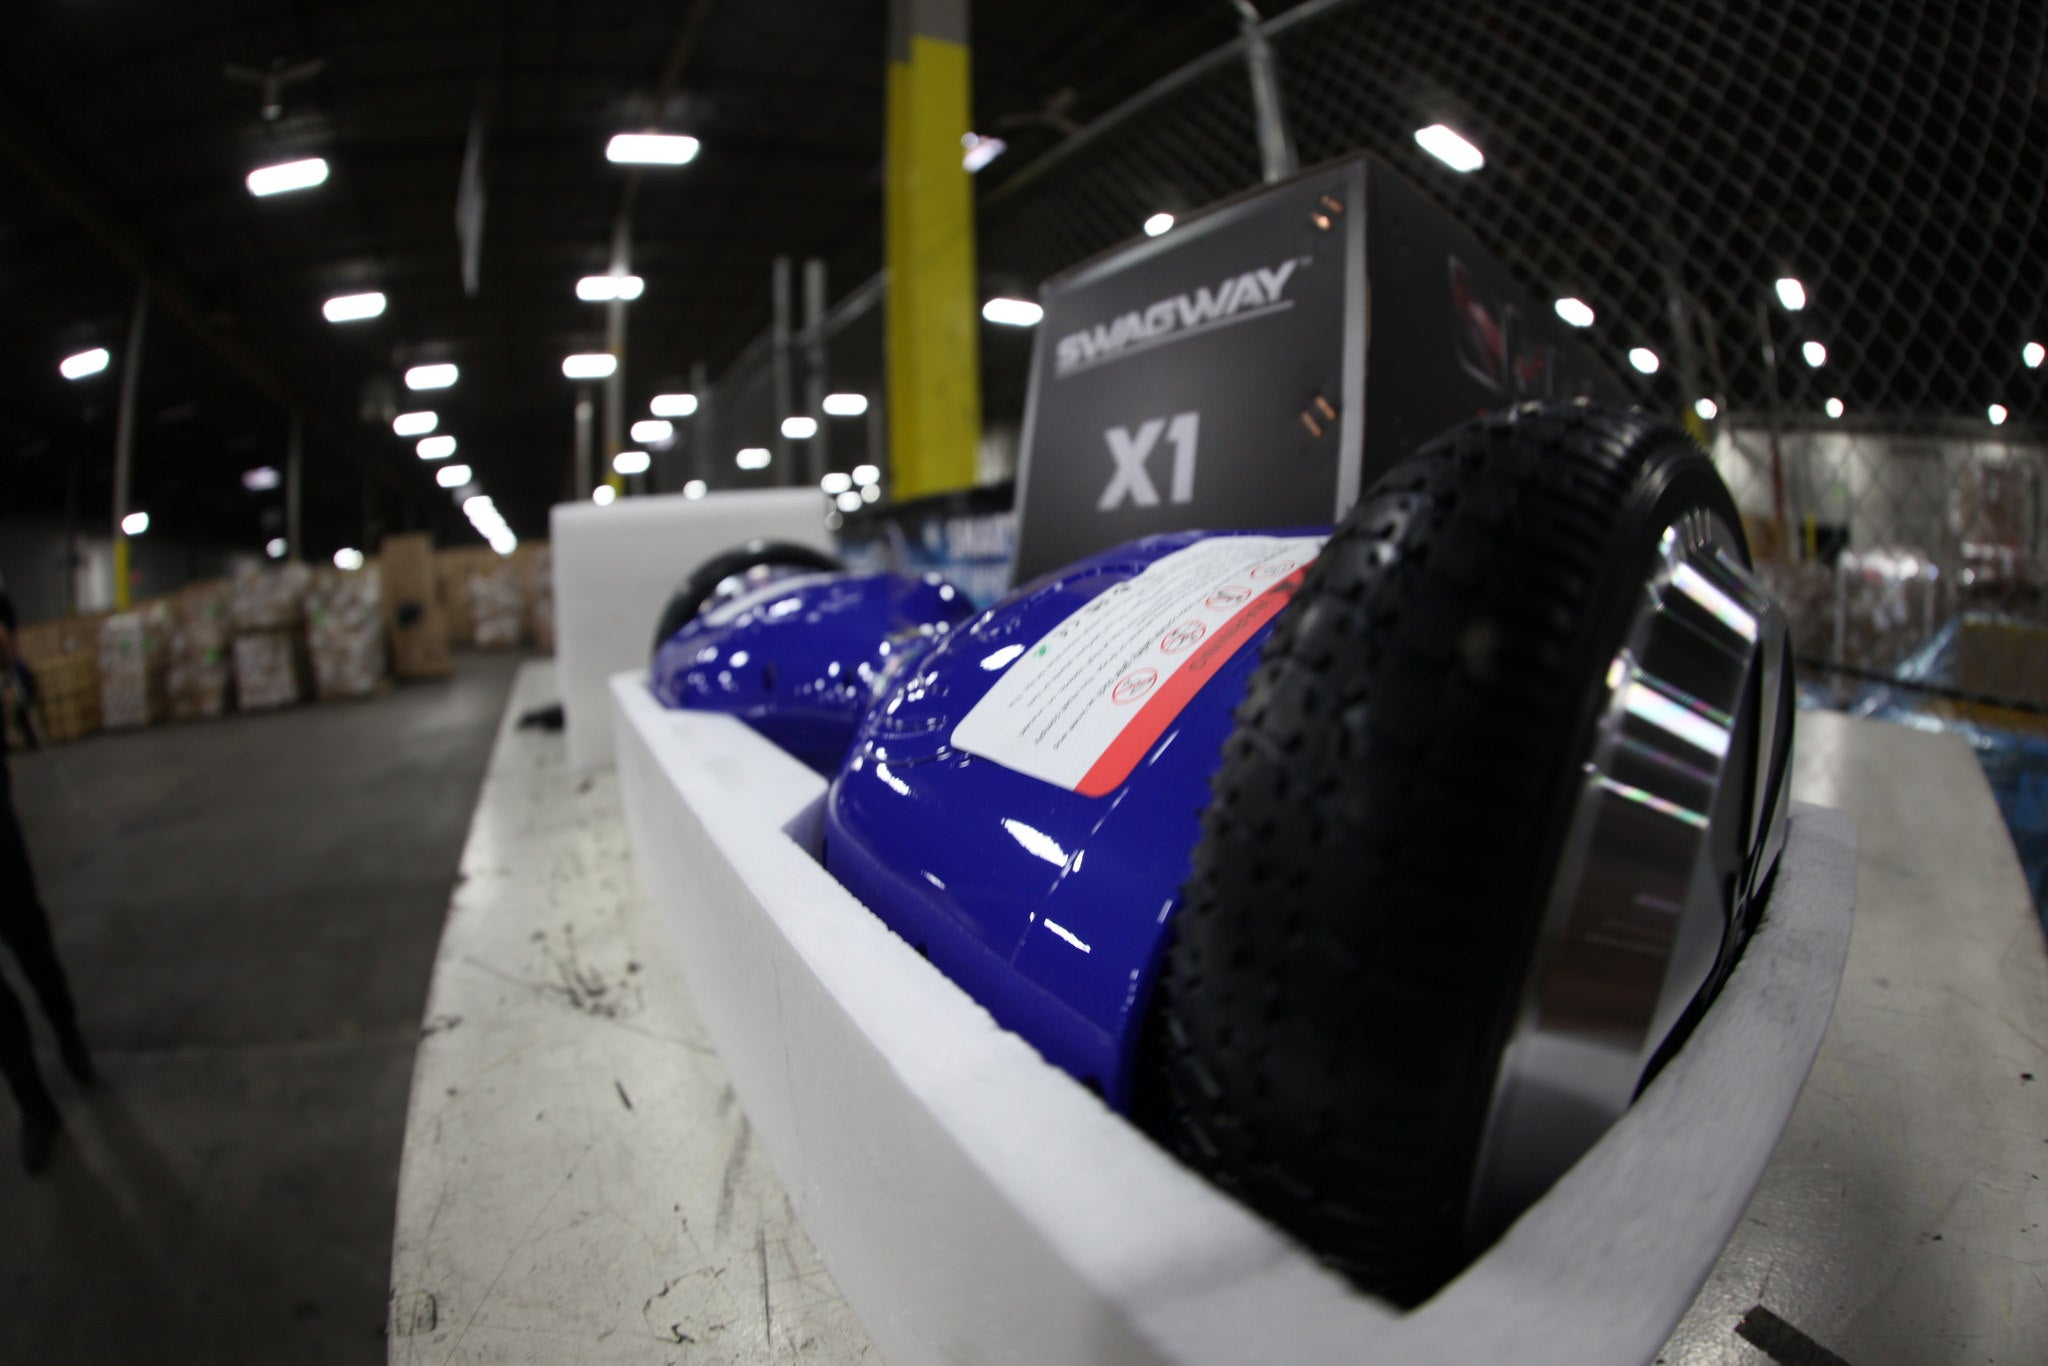 These Confiscated Counterfeit Hoverboards Do Not Have a Bright Future